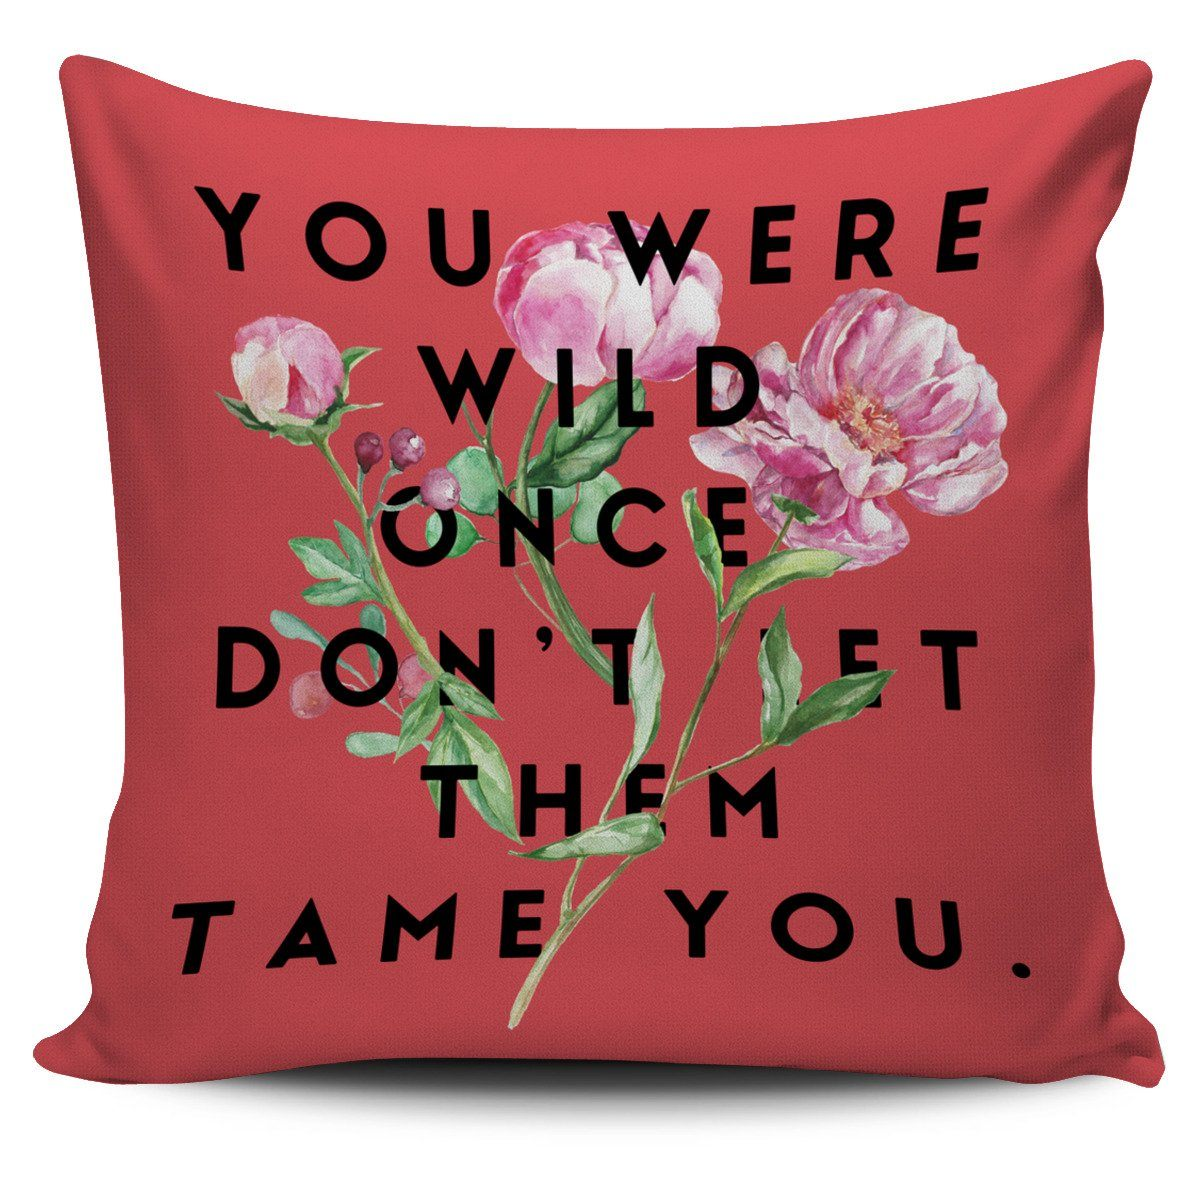 """Don't let them tame you."" Pillow Cover"